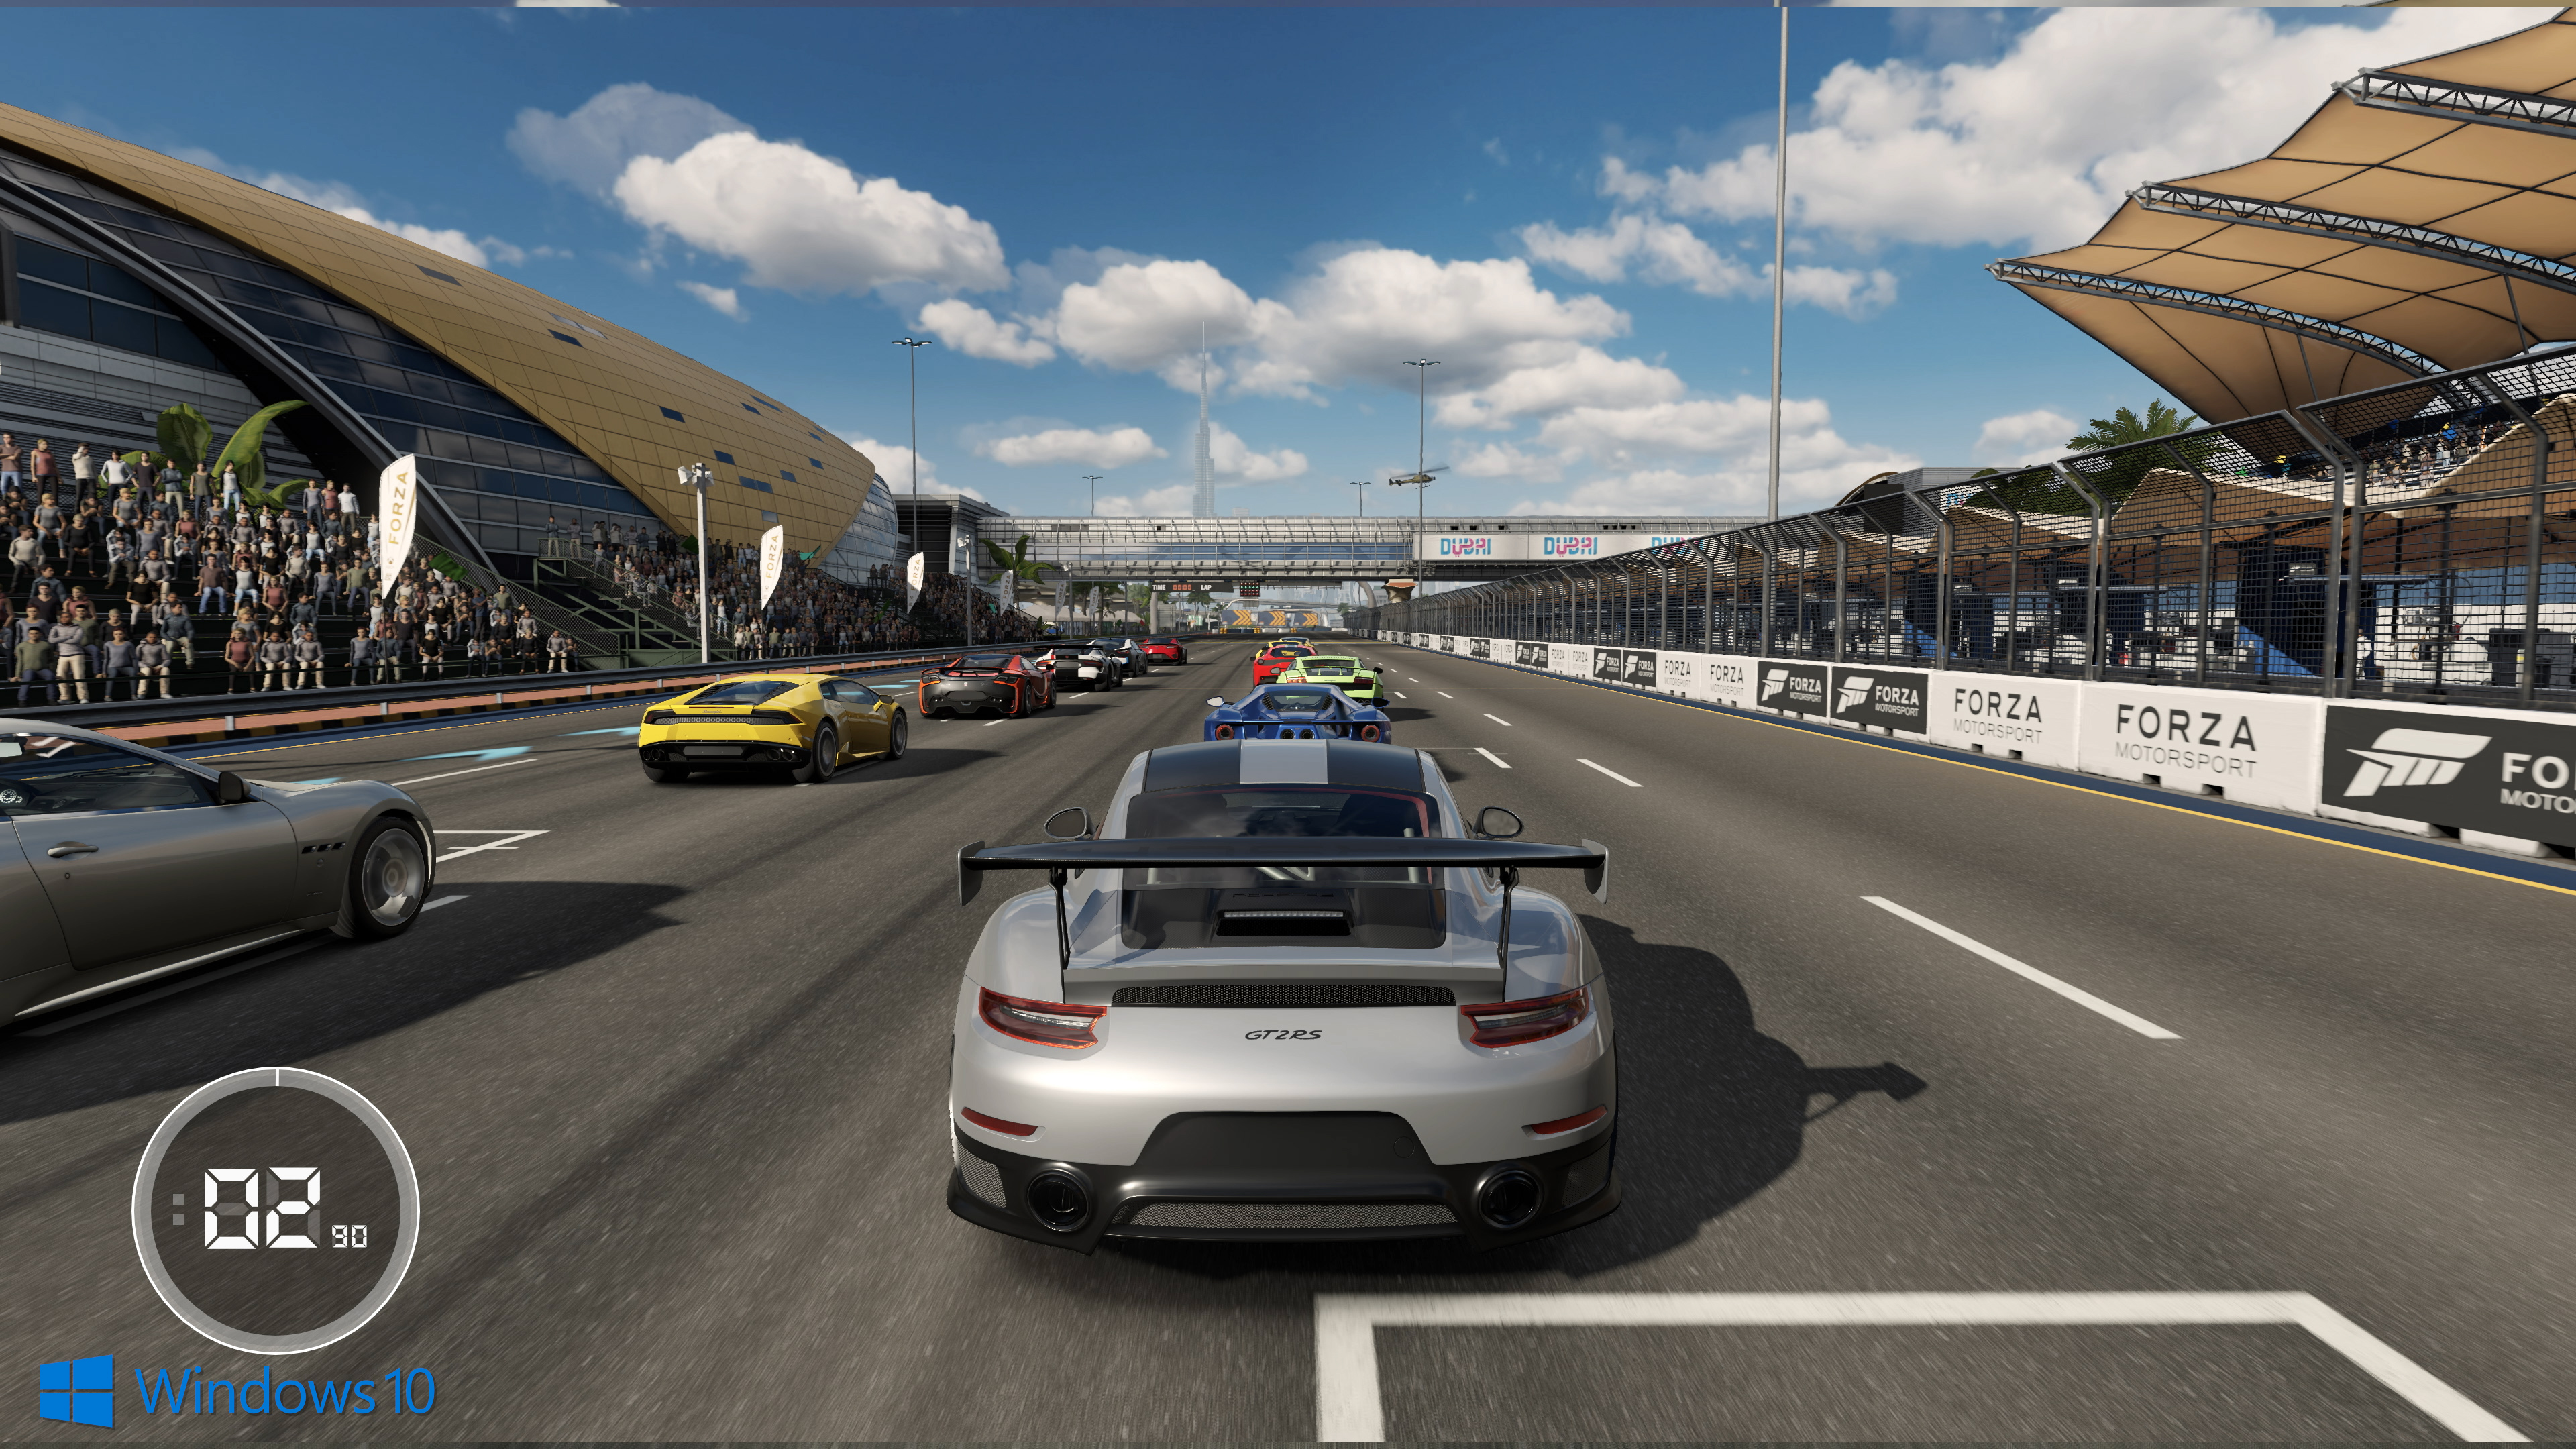 forza motorsport 7 system requirements